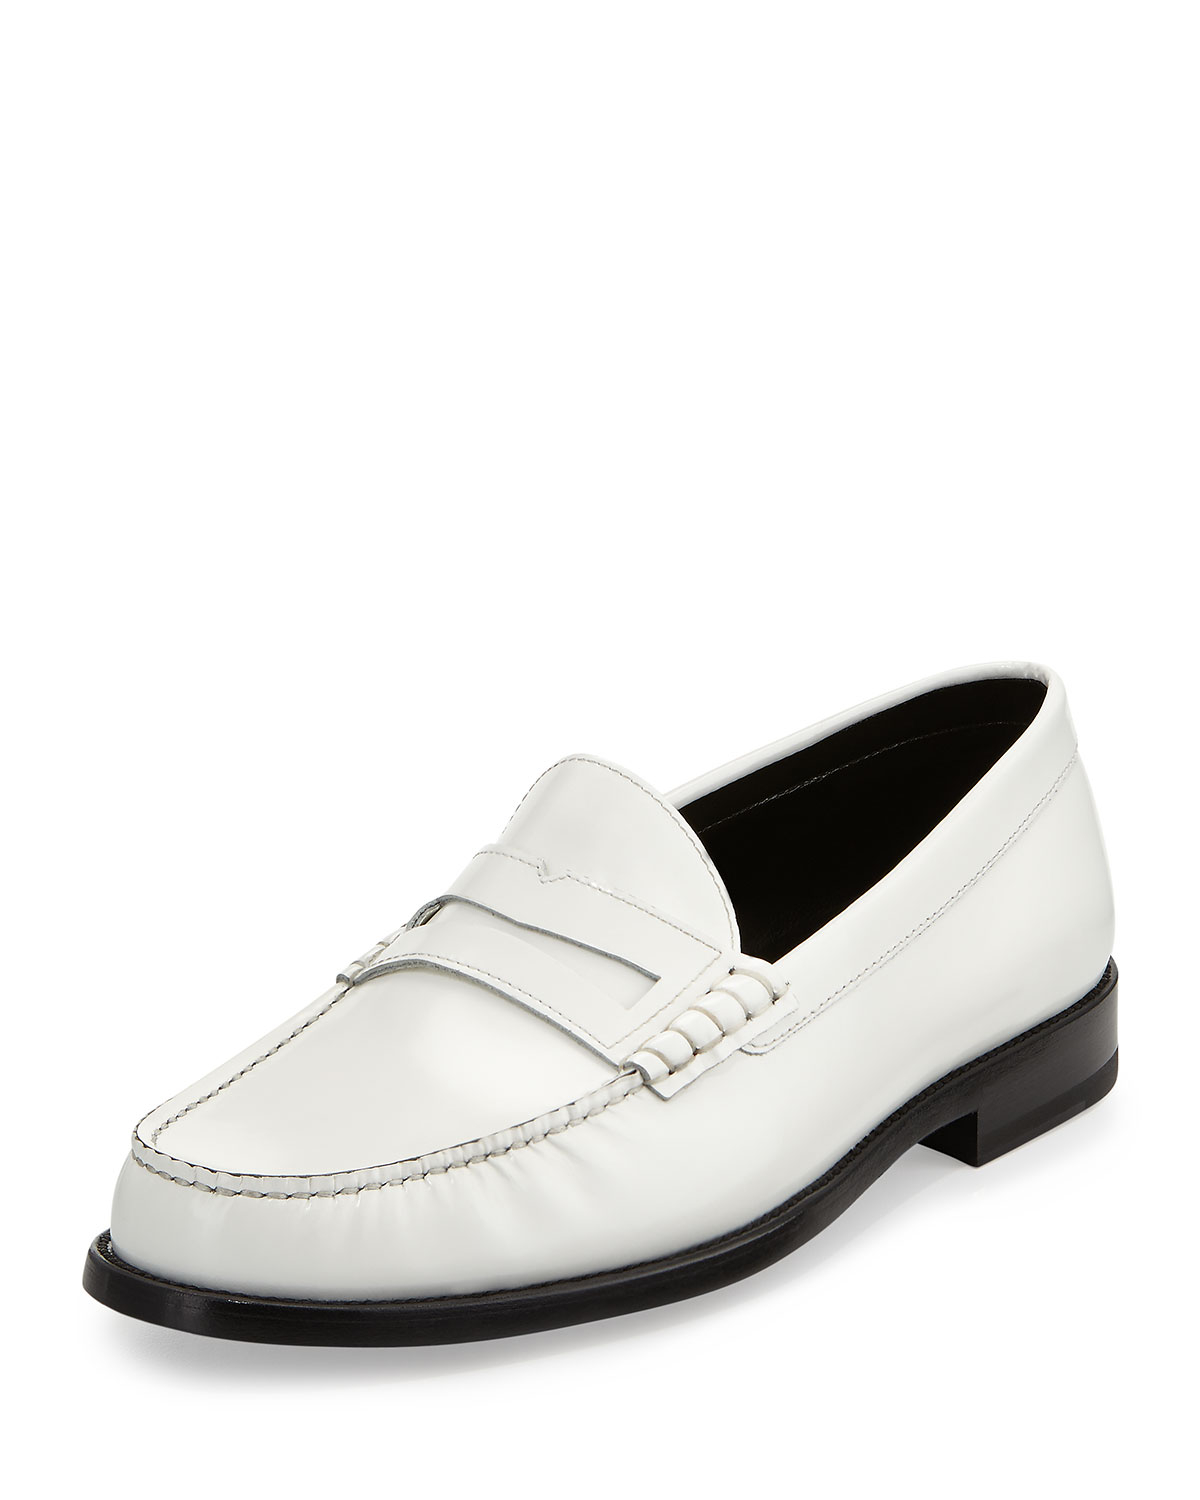 Saint Laurent Classic Leather Penny Loafer White for Men ...